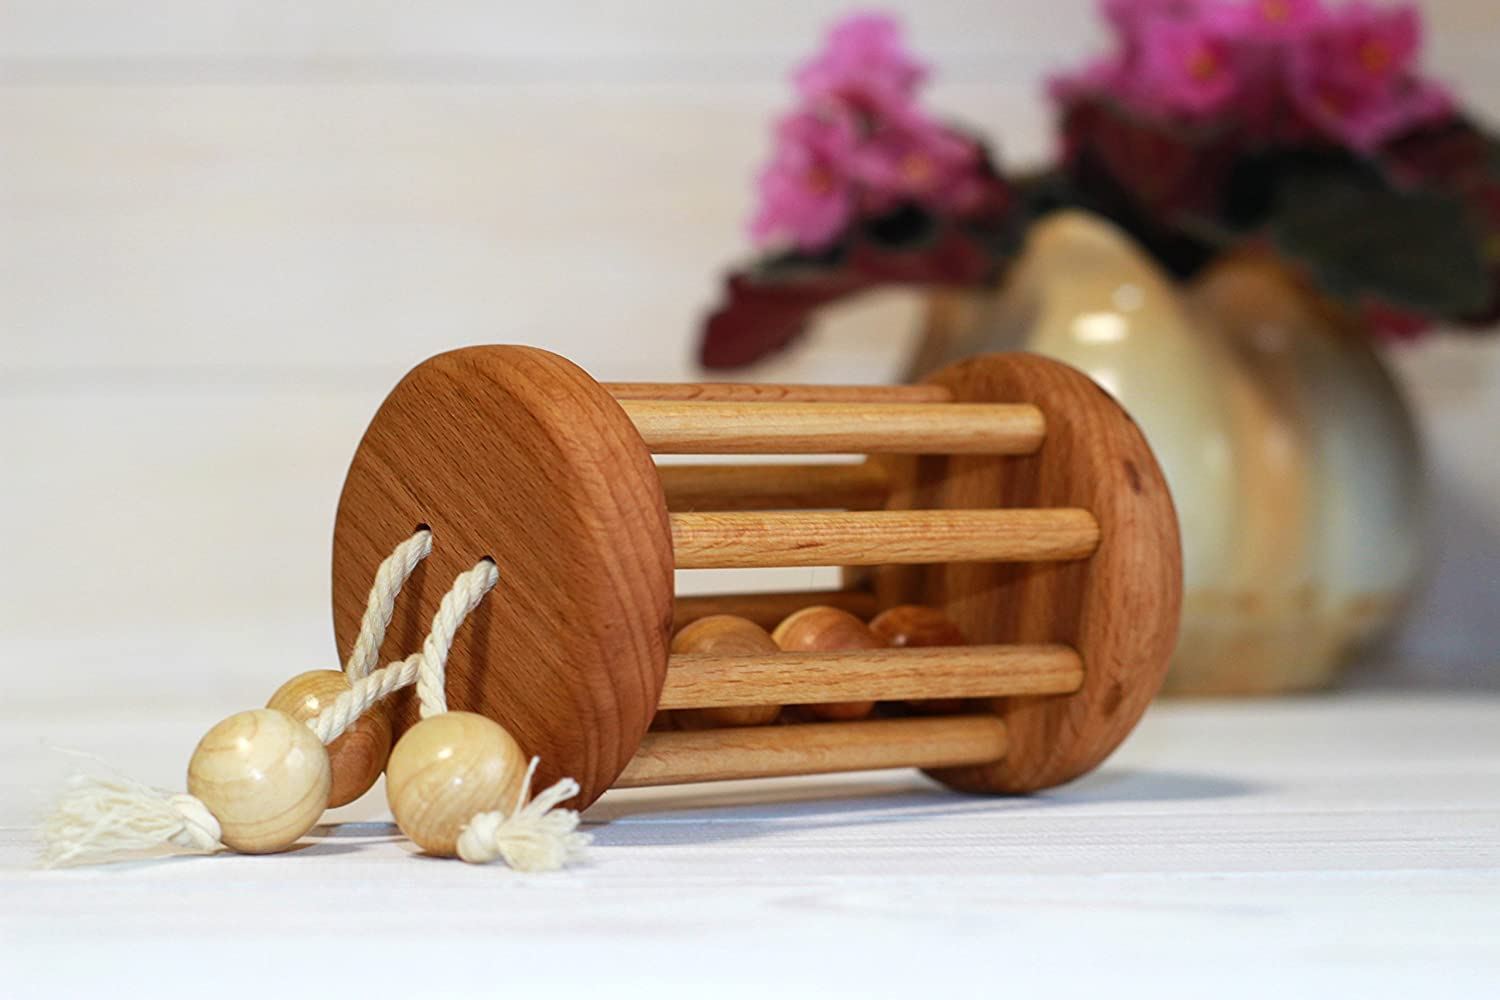 Classic Rolling Baby Rattle - Wood Toy Ball Cylinder - Montessori Infant Toy Baby wooden toys